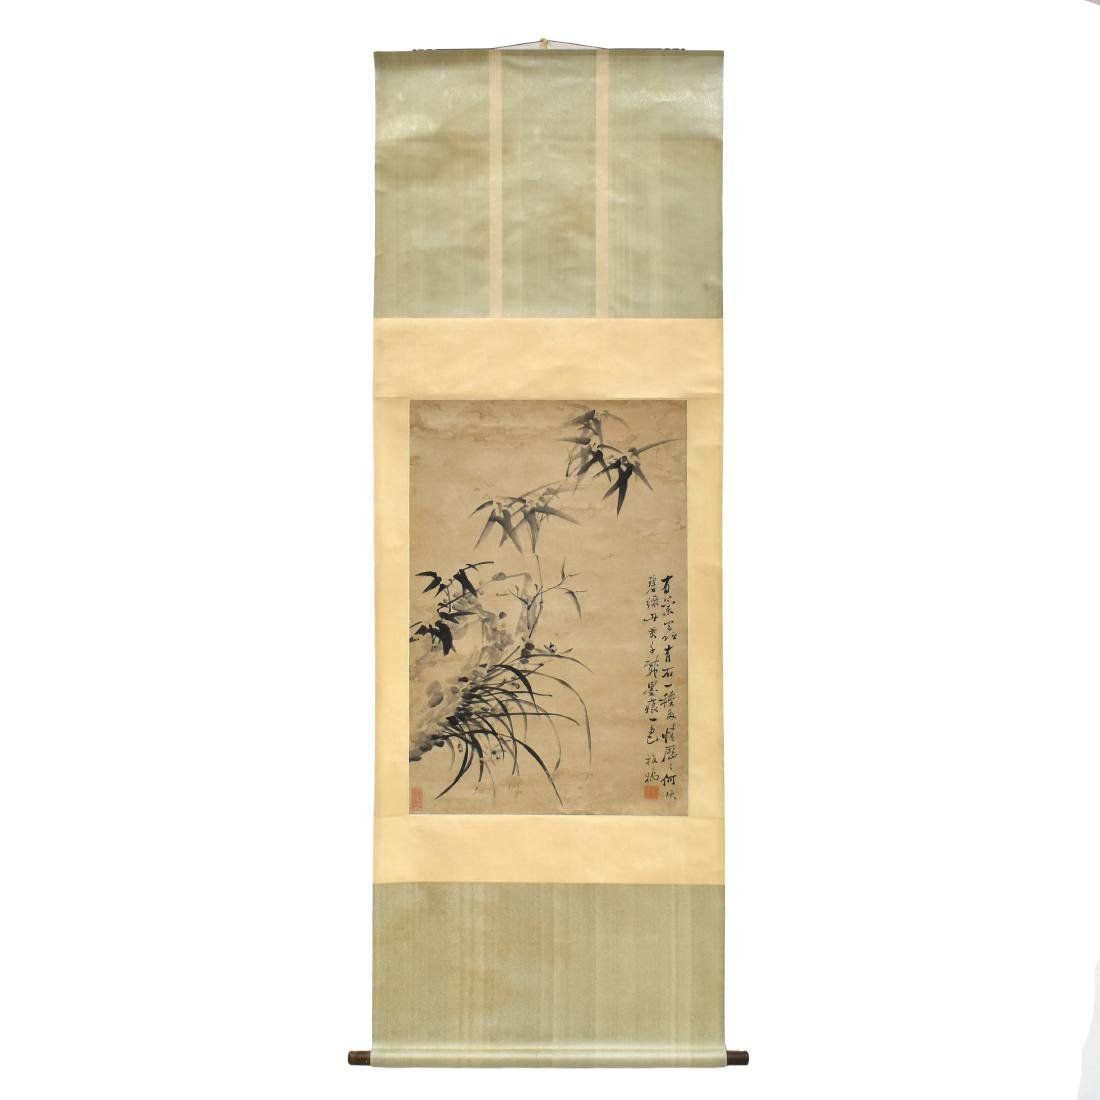 CHINESE SCROLL PAINTING OF BAMBOO SHOOTS - 2